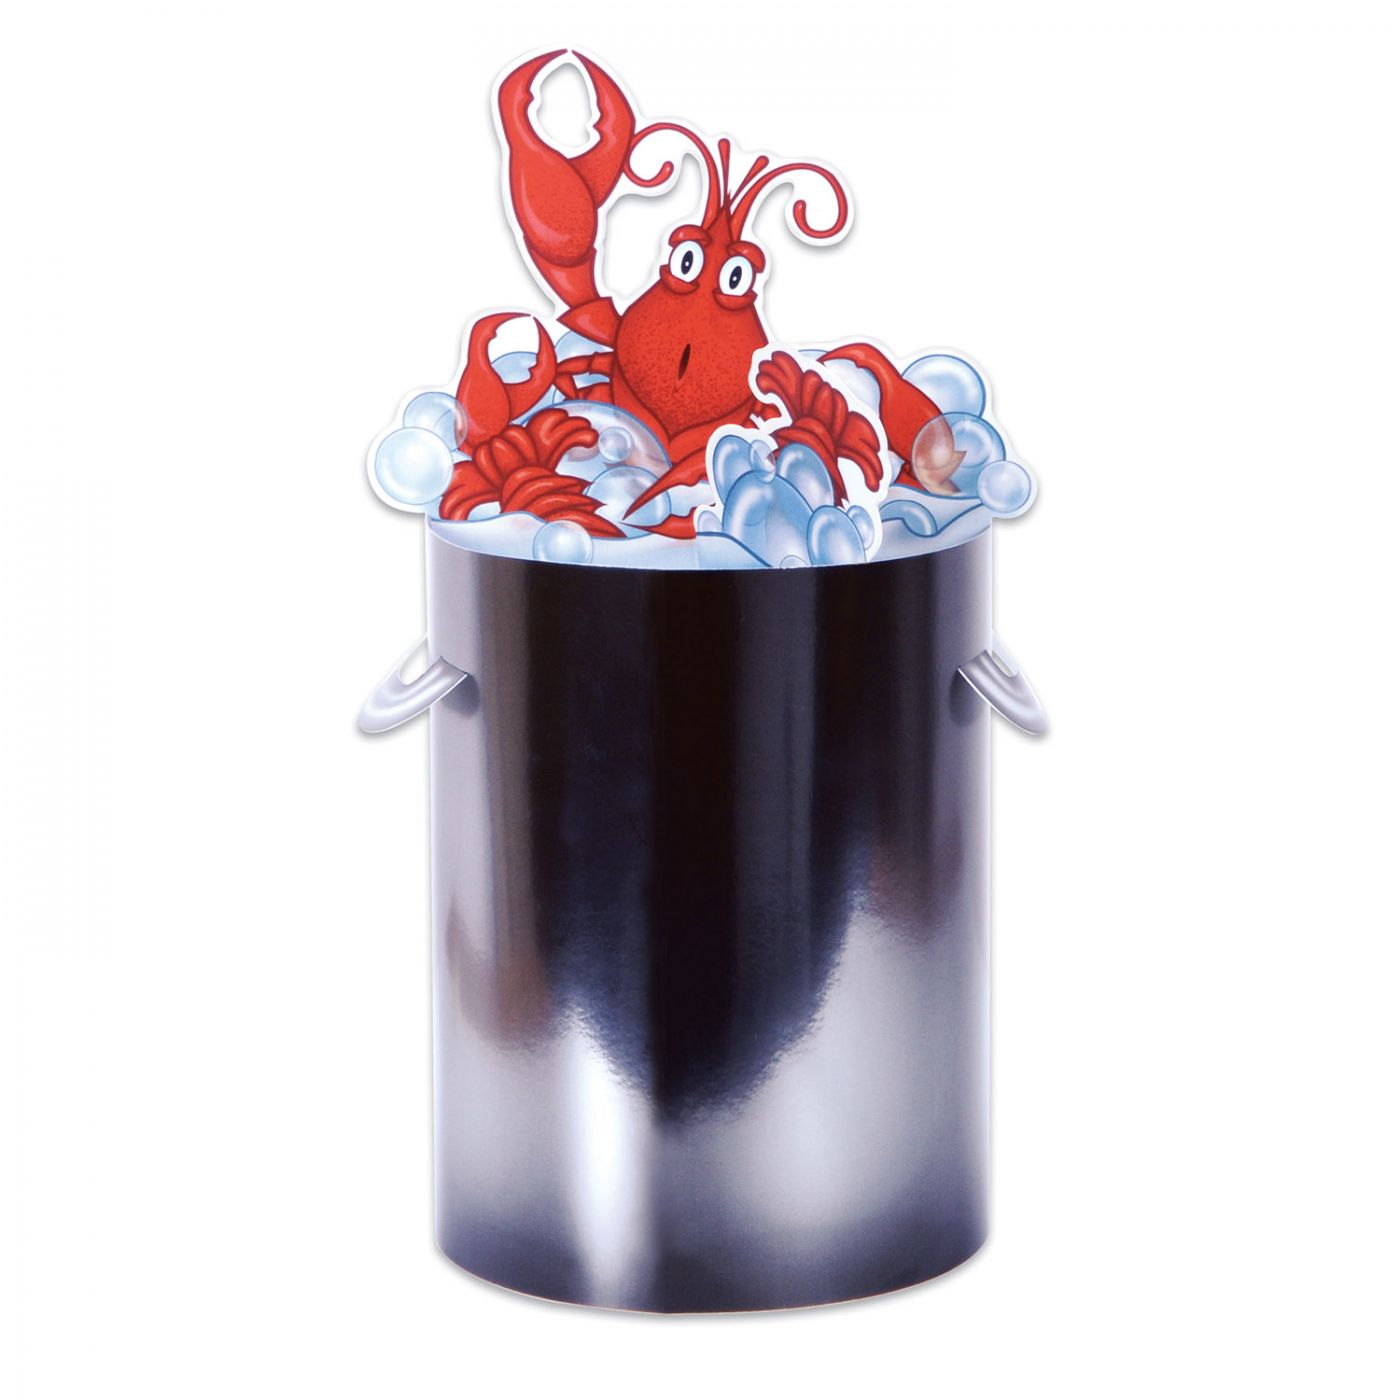 Image of 3-D Crawfish Centerpiece